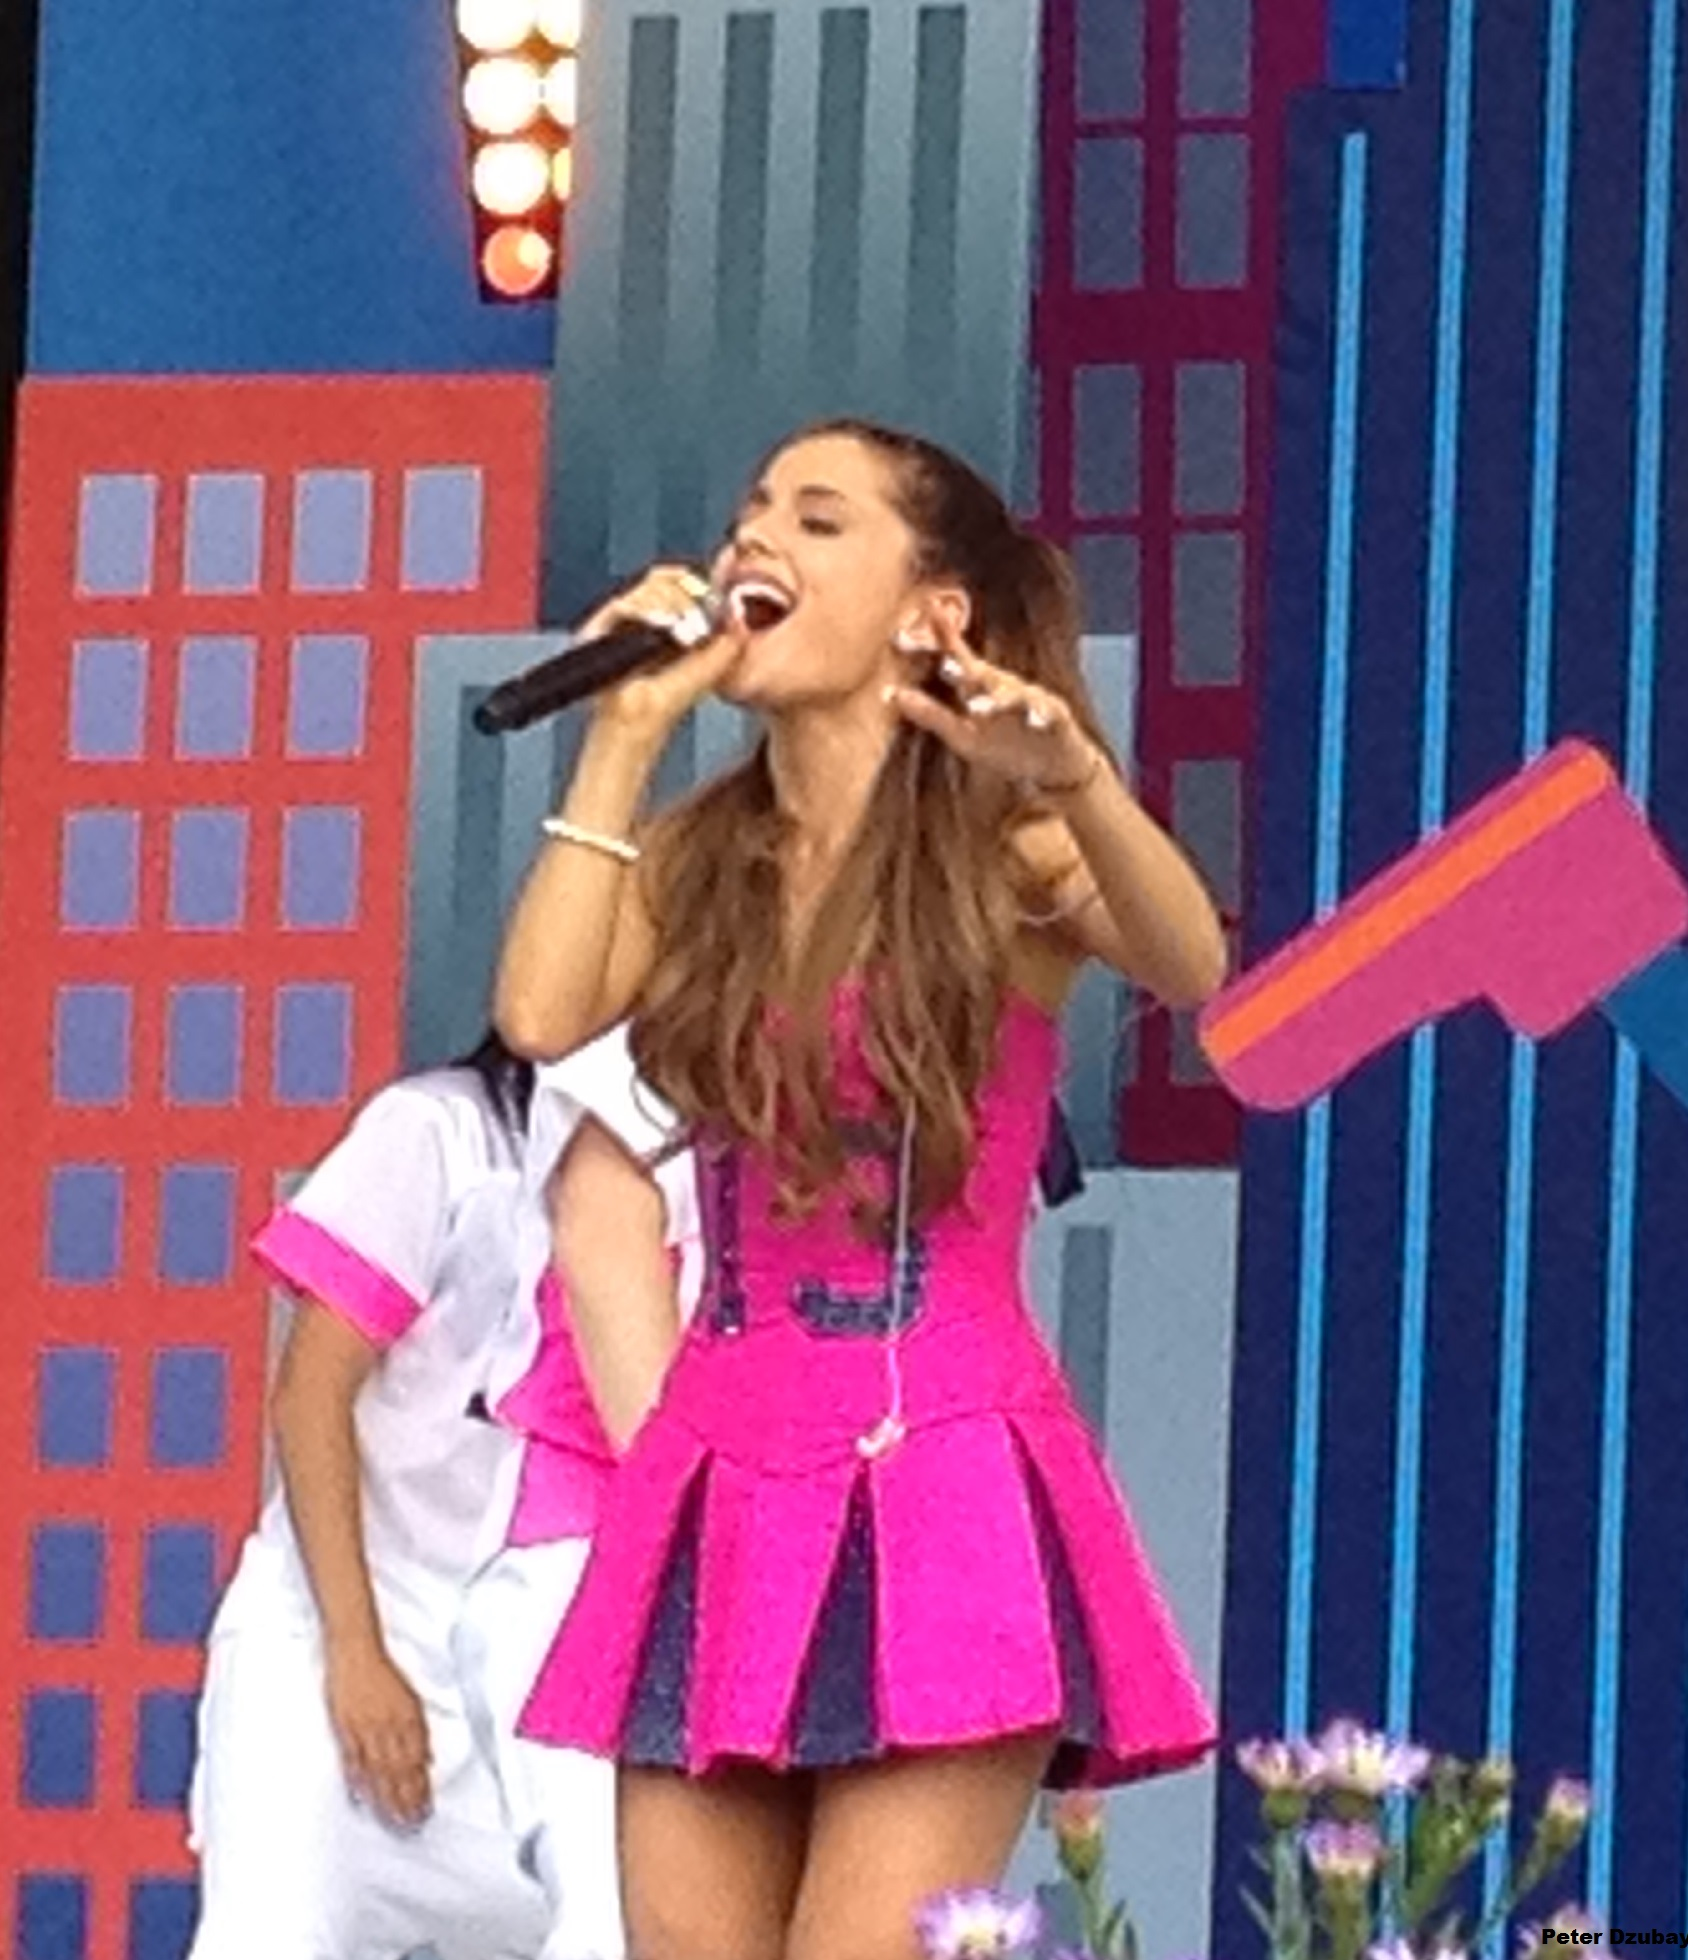 What shows did ariana grande play in